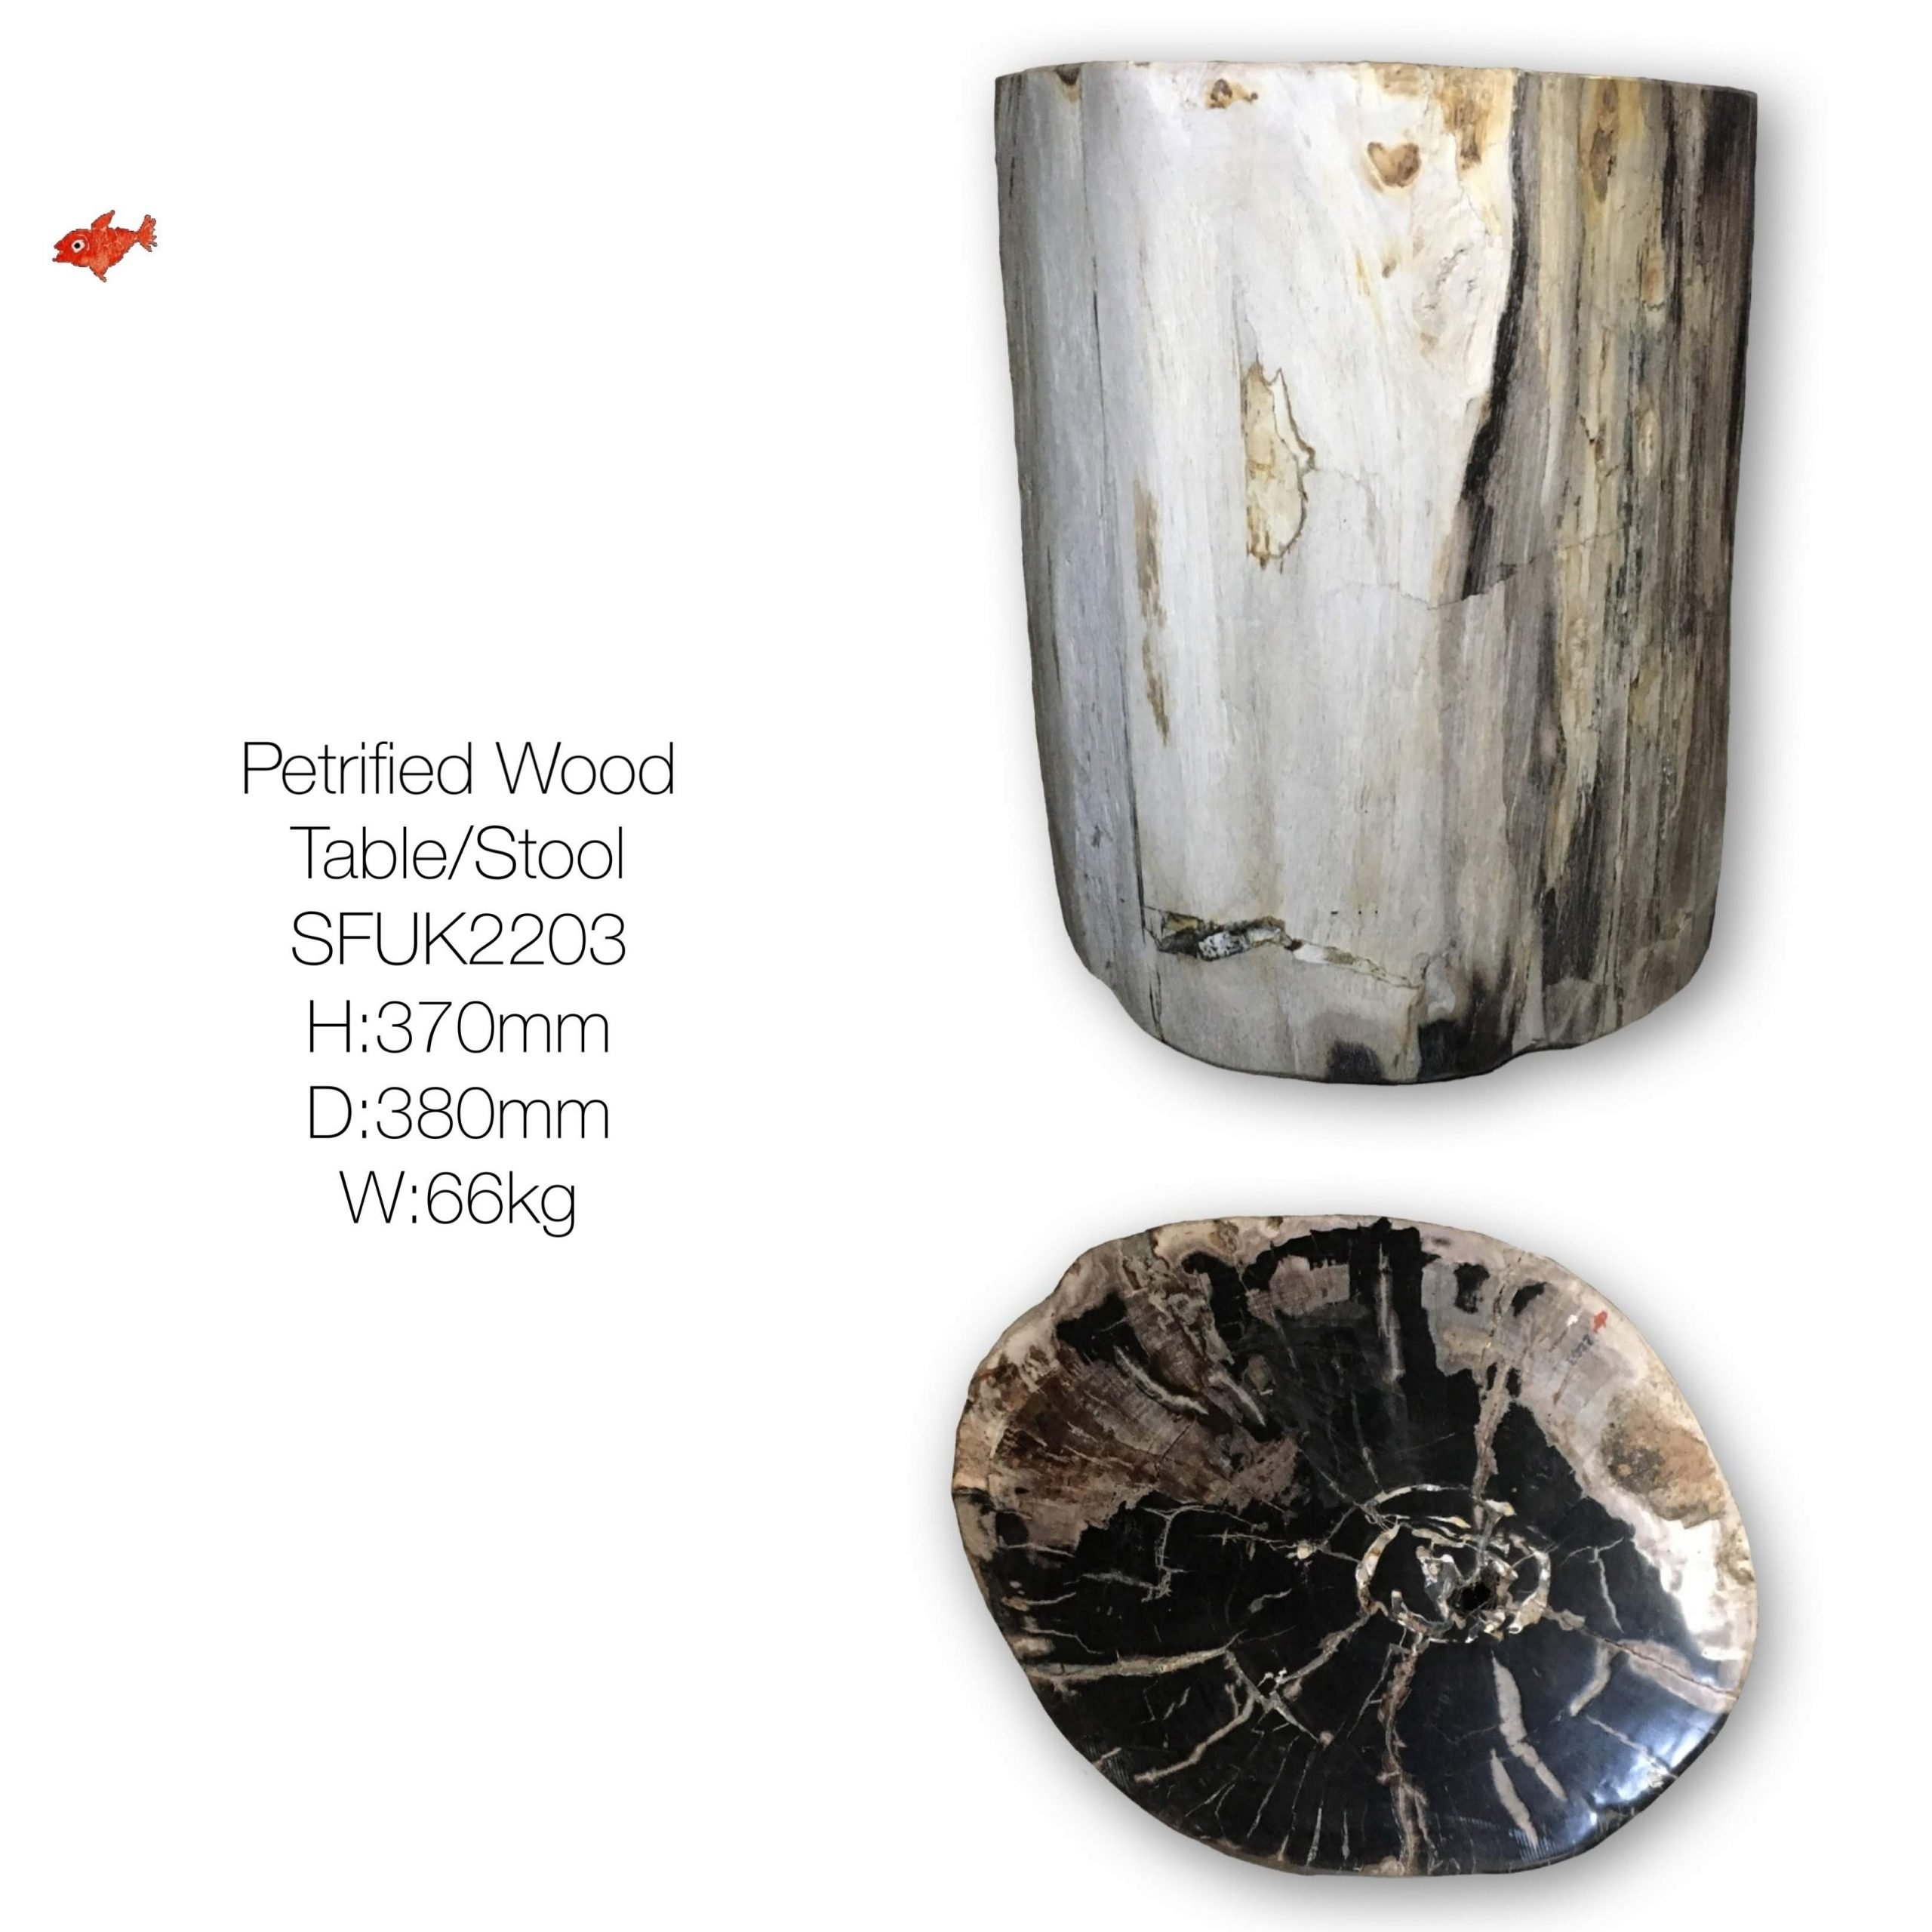 Fully Polished by hand, Petrified Wood Side Table or Stool